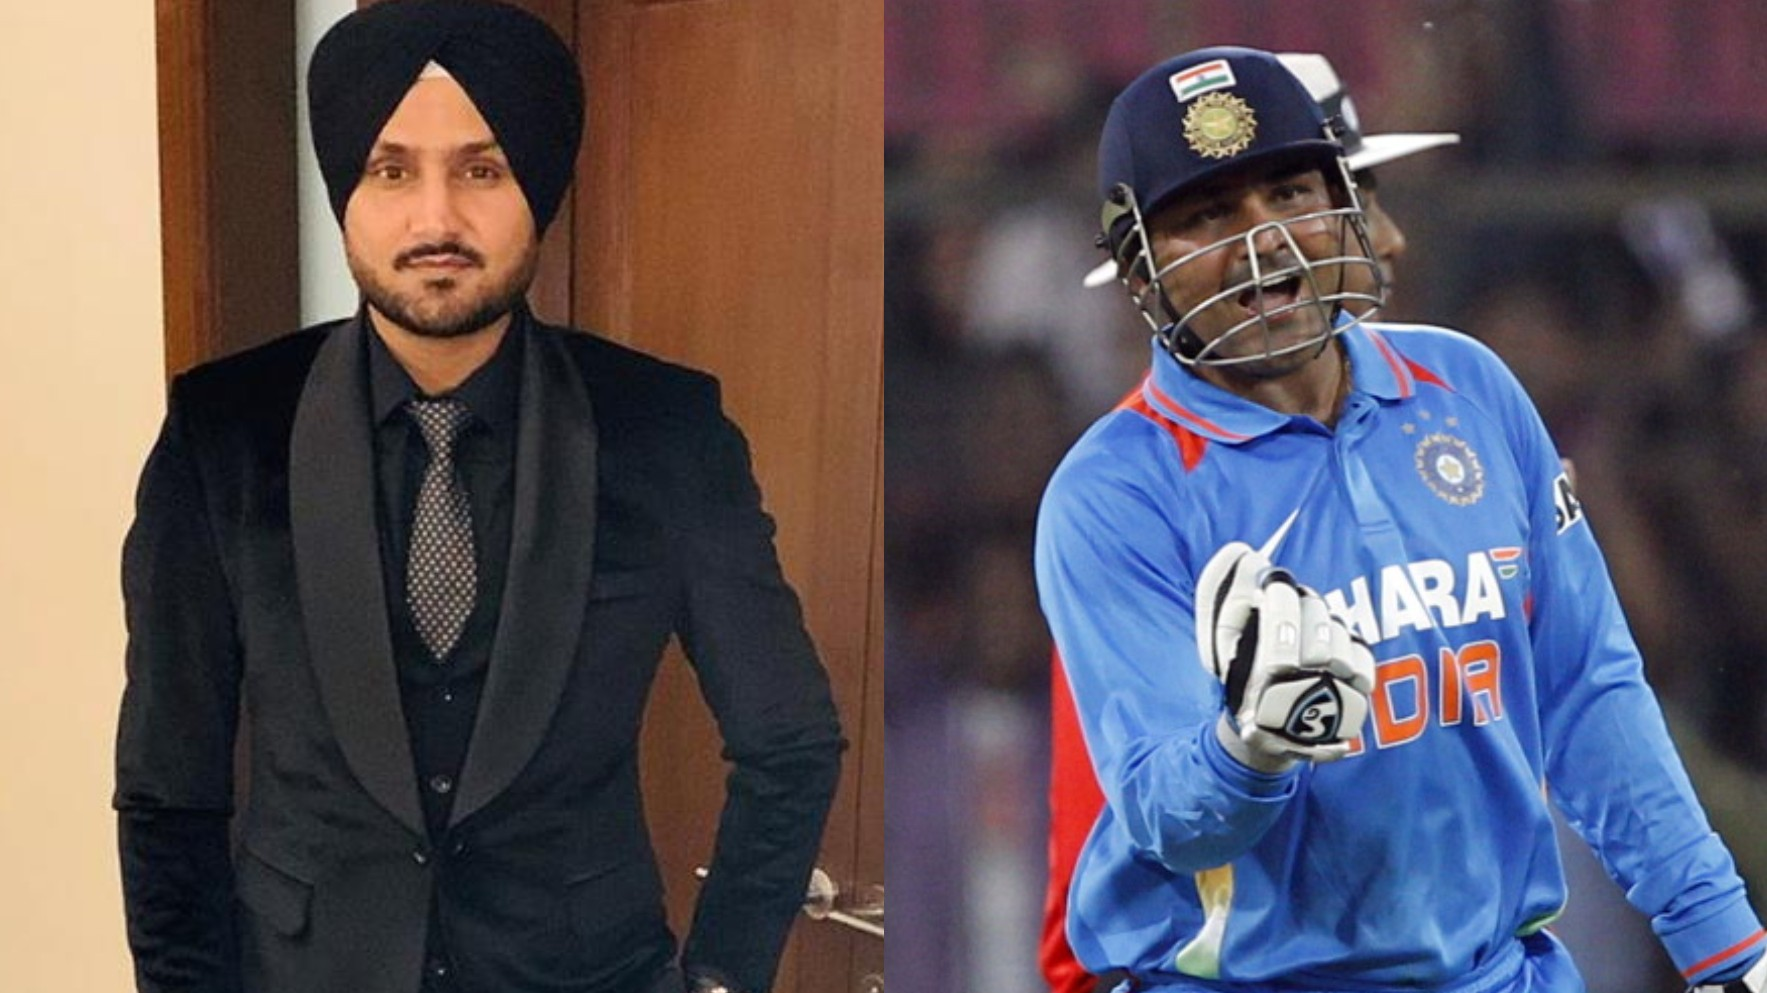 Harbhajan says Sehwag could have scored 300 in ODIs on 8th anniversary of his 219 vs WI